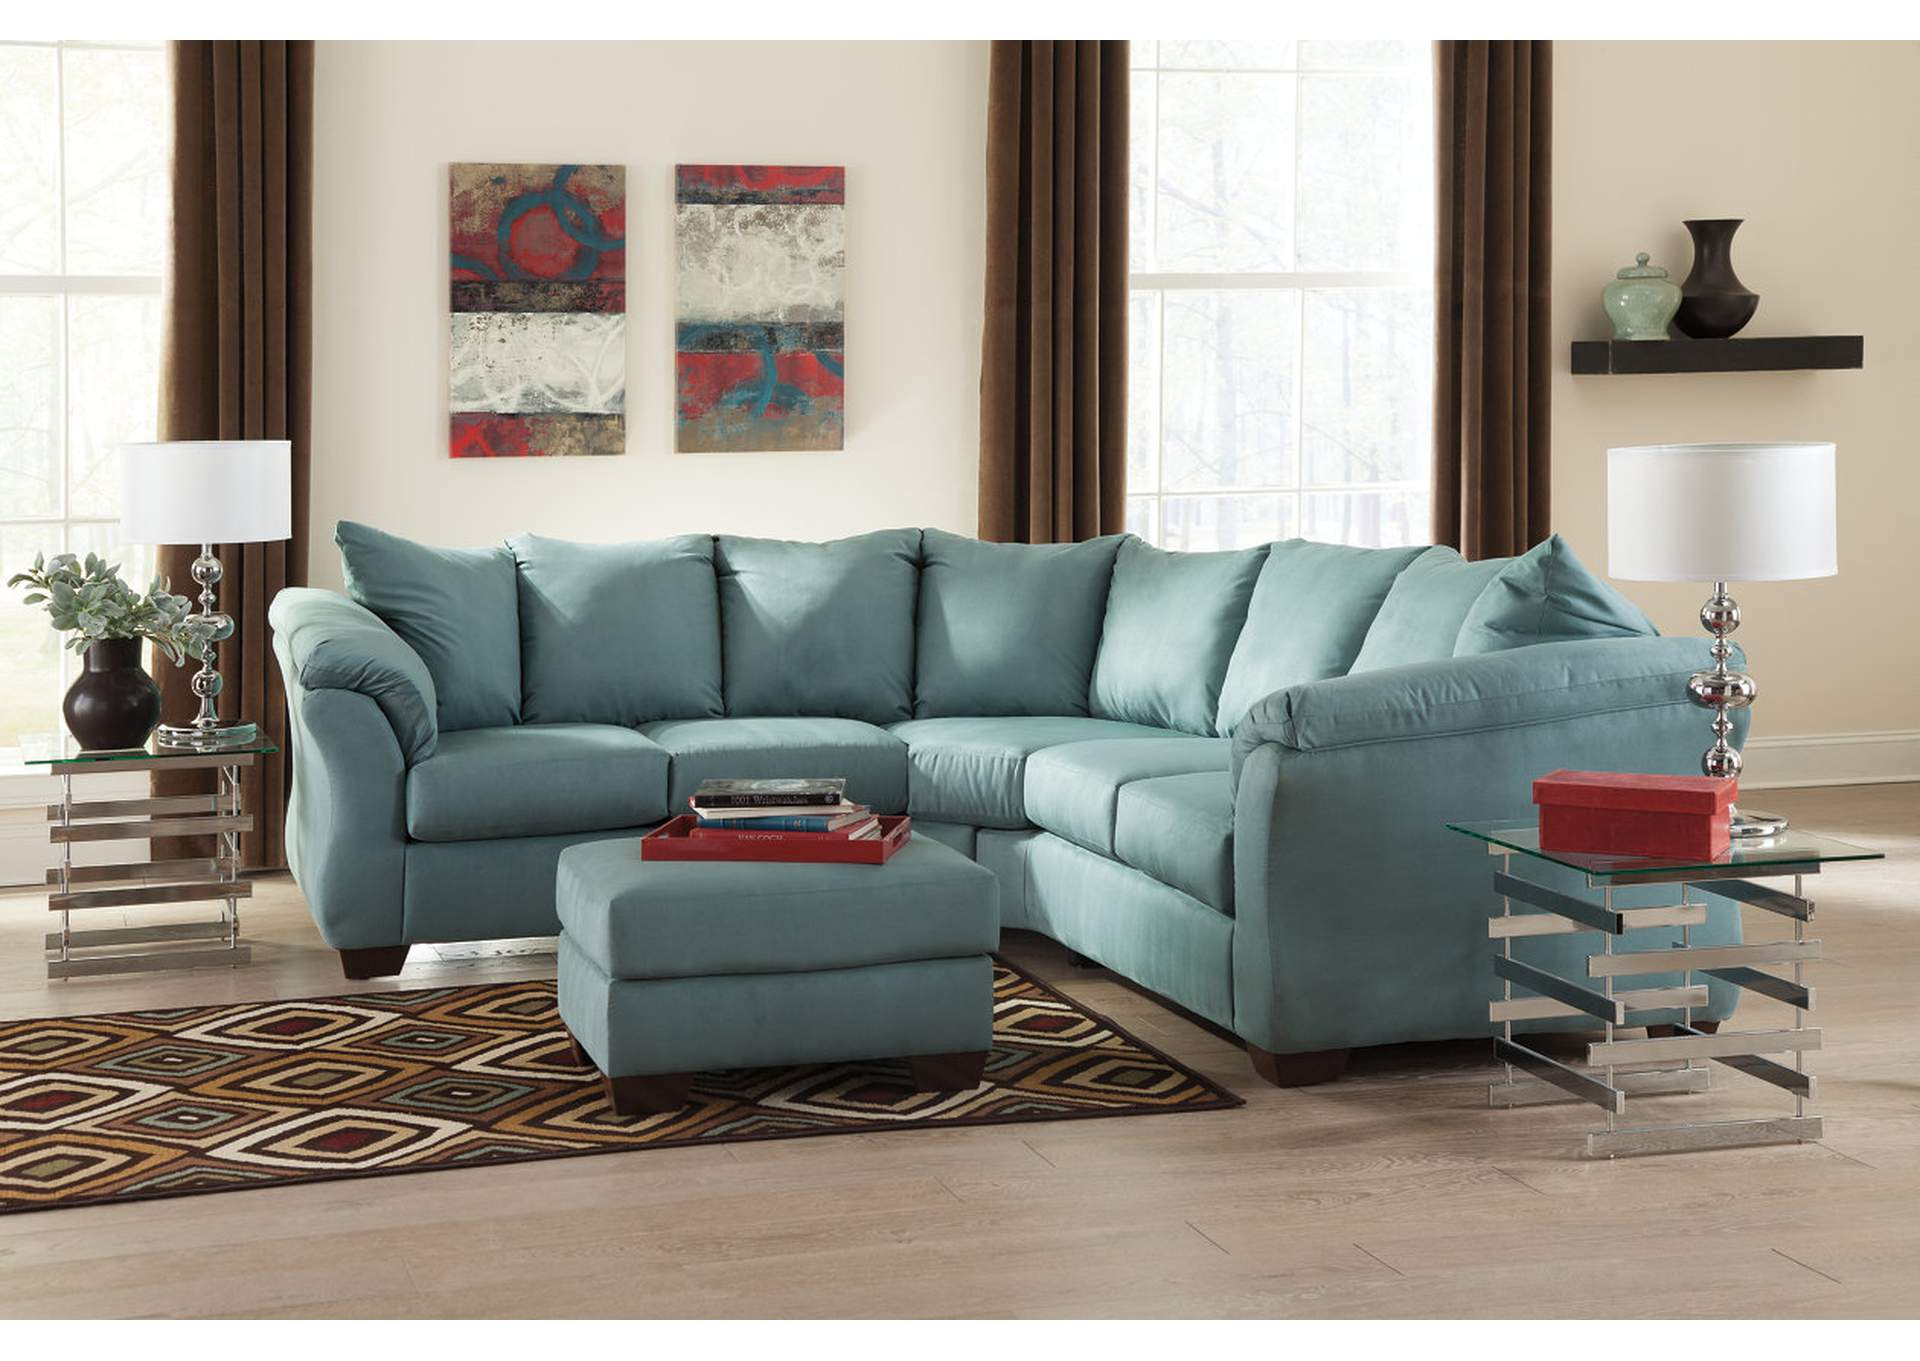 Big box furniture discount furniture stores in miami for Affordable furniture florida